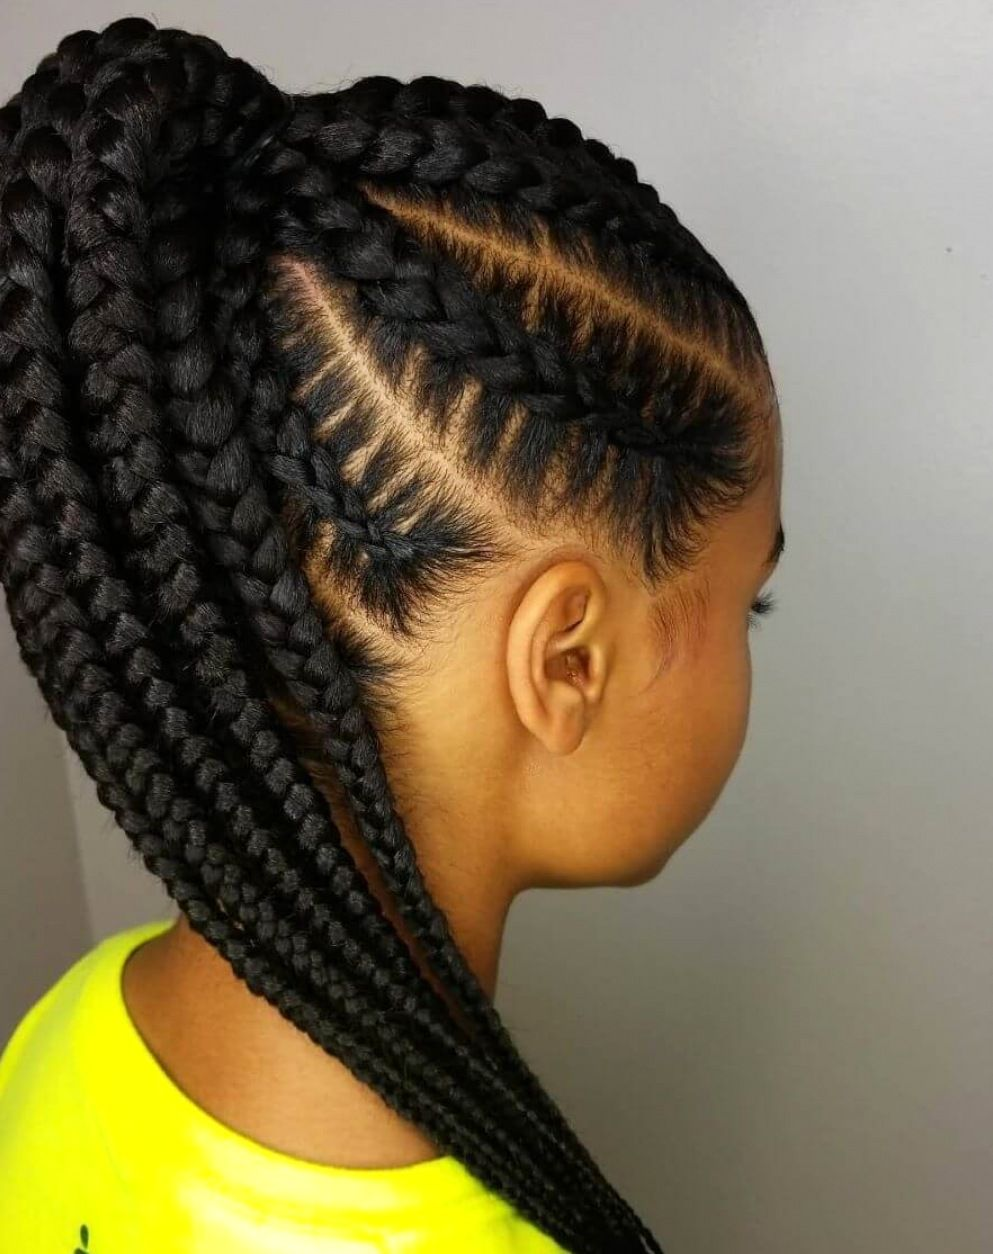 Best Protective Styles For Natural Hair Growth 2021 In 2021 Natural Hair Growth Hair Styles Cornrow Hairstyles